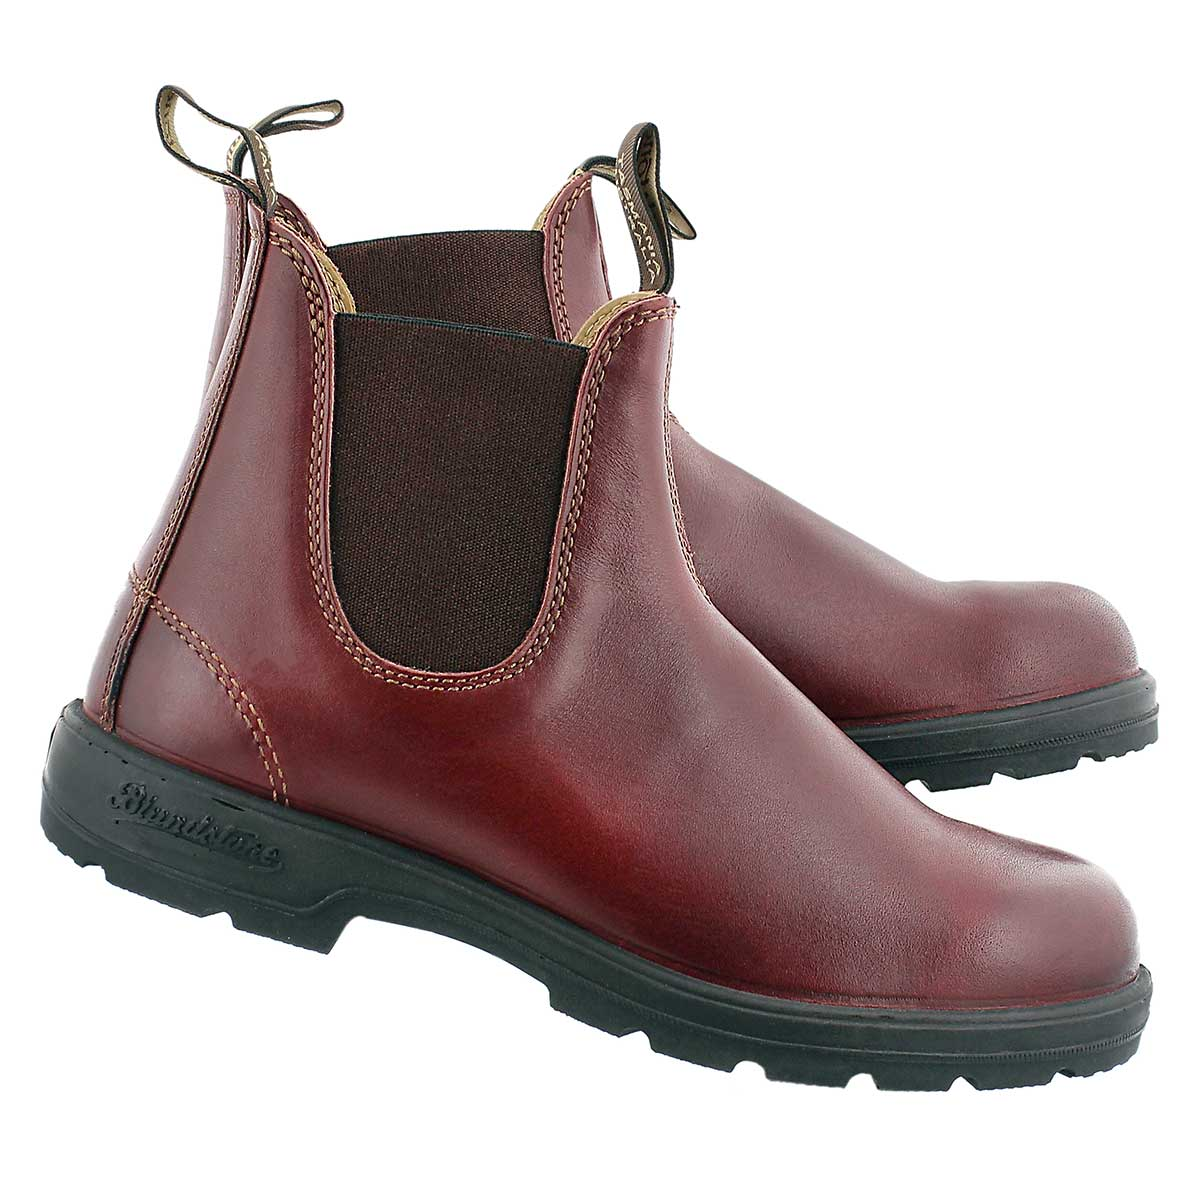 Unisex Original burgundy pull on boot